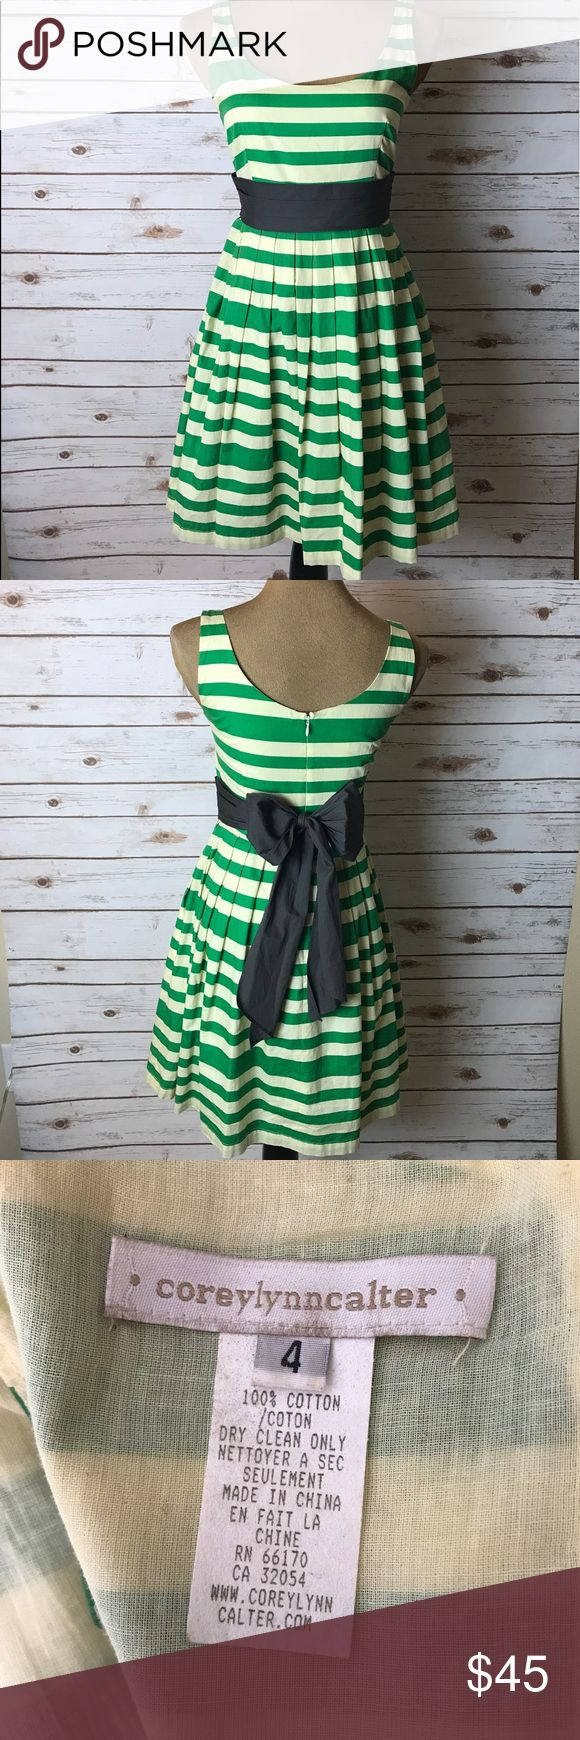 Anthropologie Corey Lynn Calter Striped Dress Anthropologie Corey Lynn Calter Sun Dress  Size: 4  Color: Green, Ivory, Dark Grey  Pattern: Striped  Style: Tea Dress, Fitted Waist, Attached Tie Waist, Above Knee, Scooped Neckline, Thin Straps  Fabric: 100% Cotton  Care: Dry Clean Only  Condition: Preowned and in great condition  Imported   ****Comes from a smoke free & clean environment. Anthropologie Dresses Midi